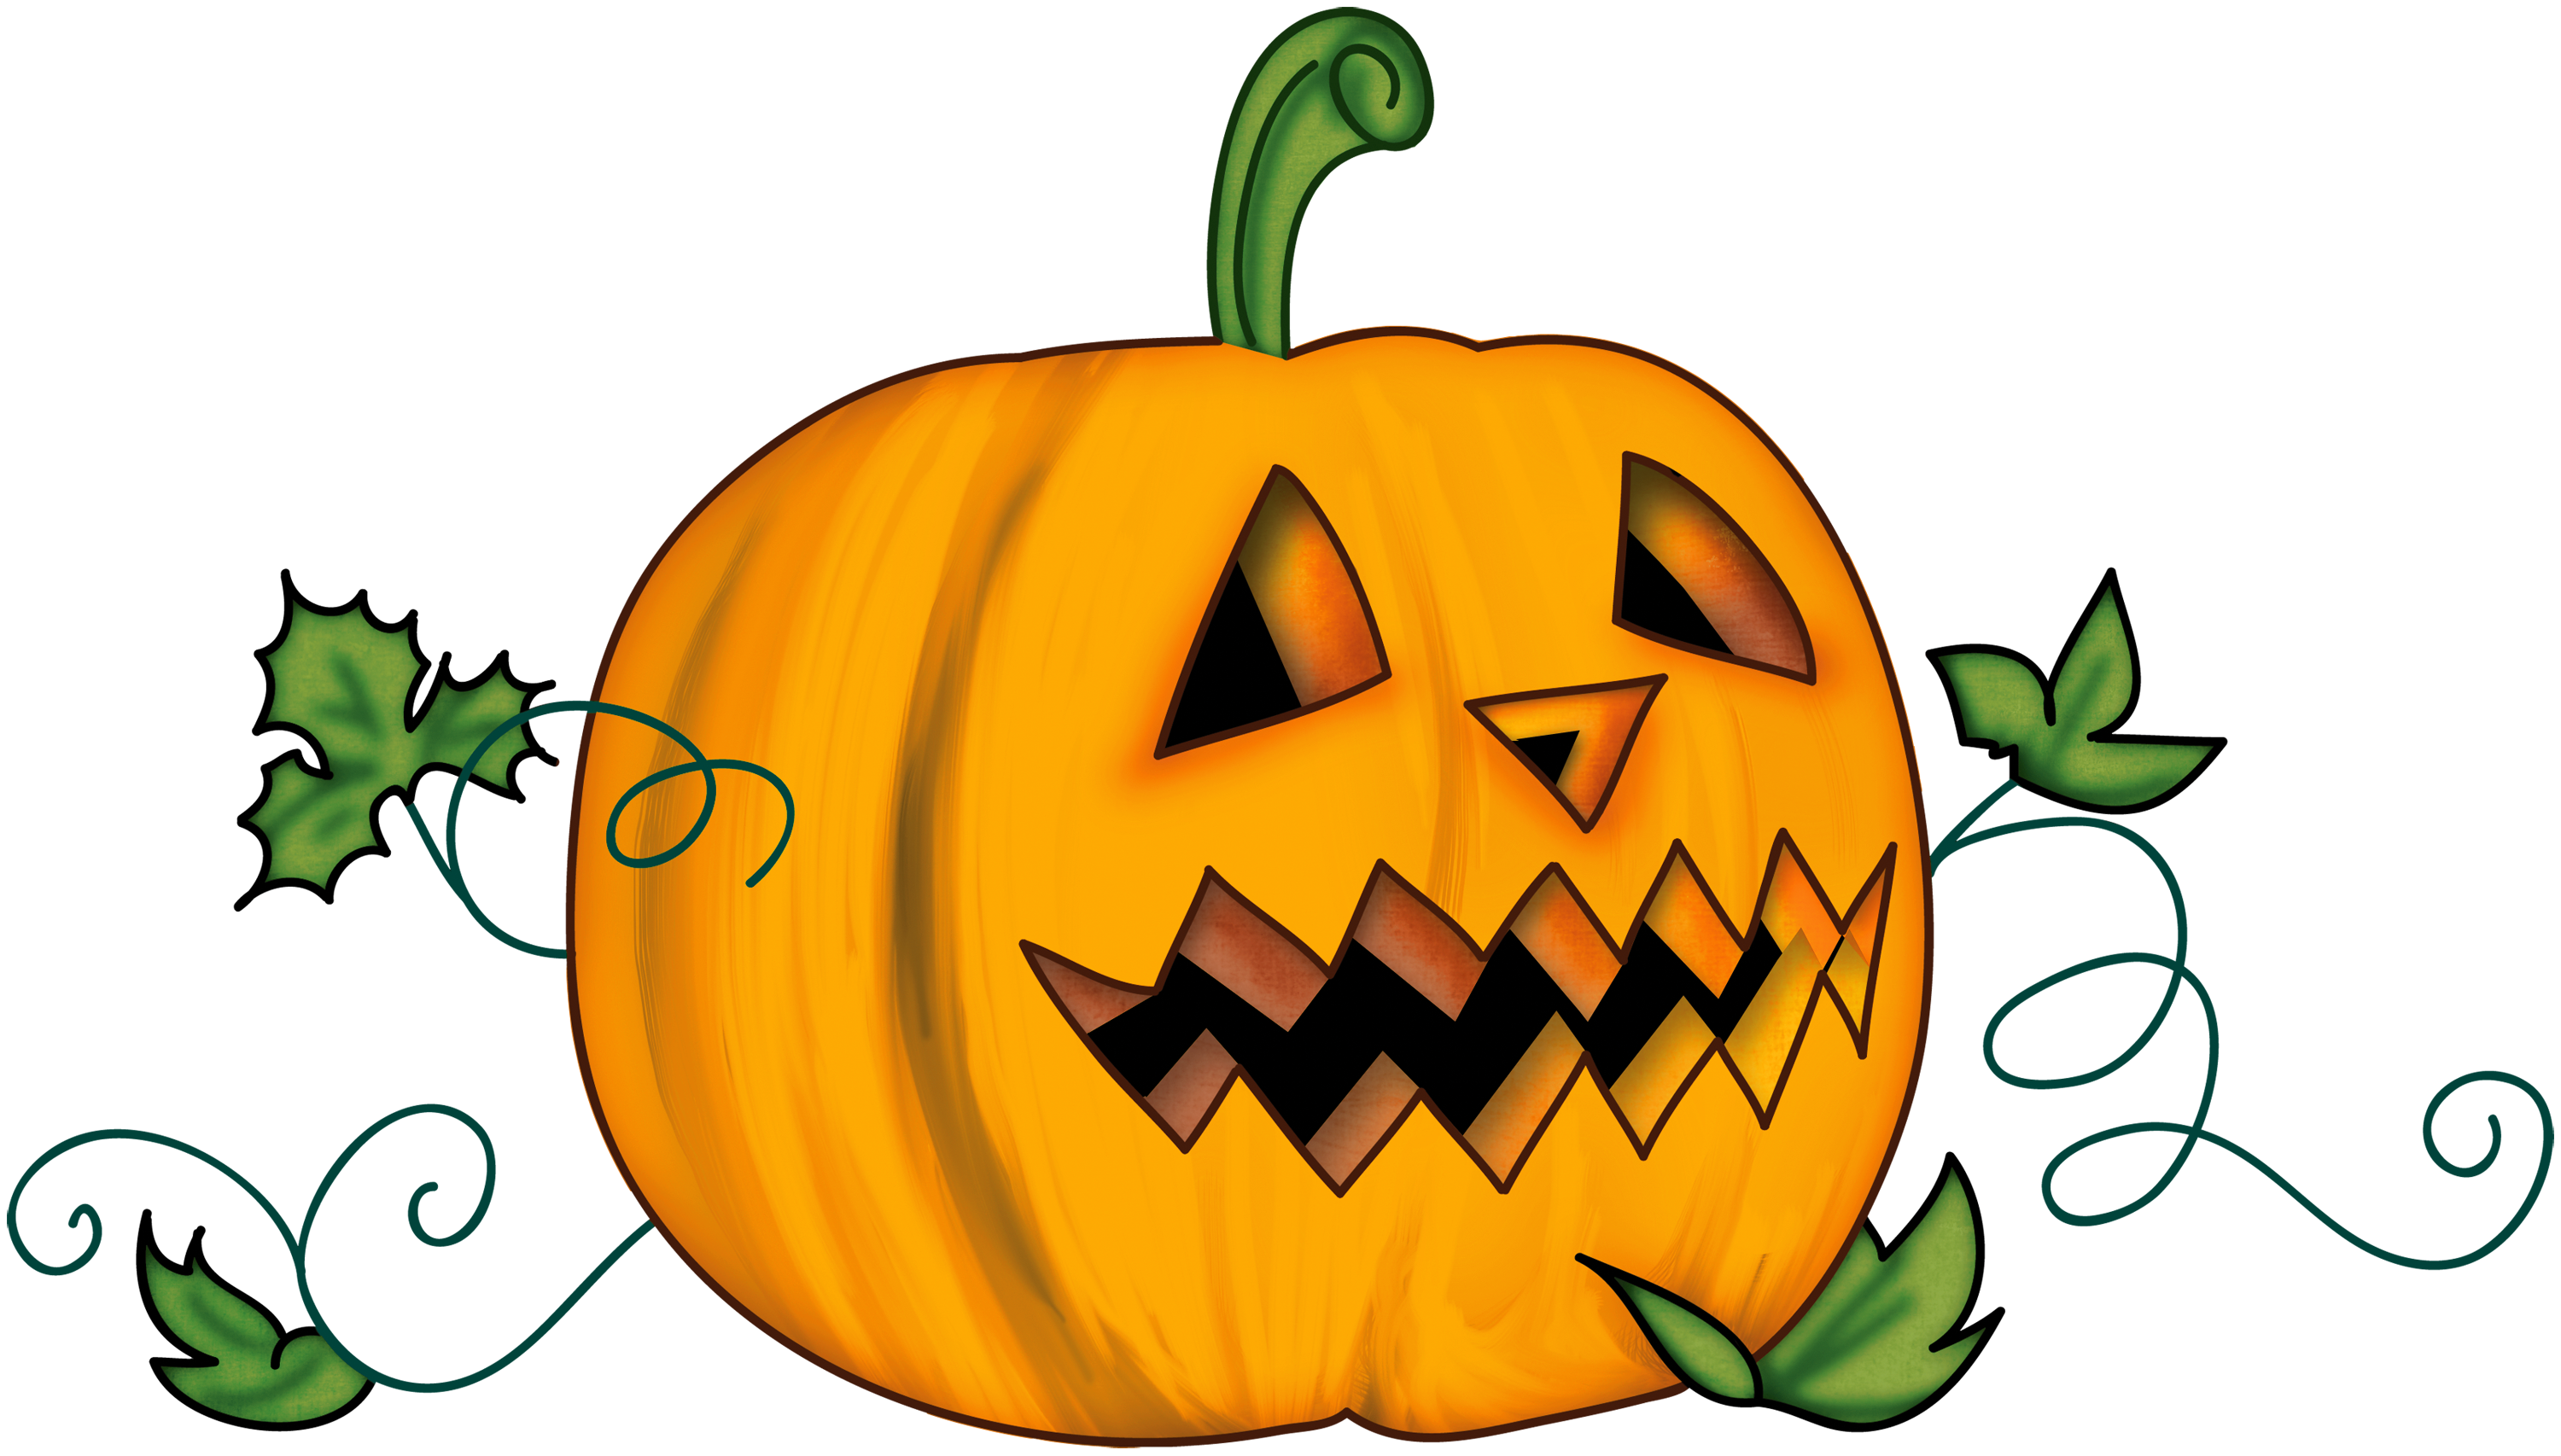 Fall clipart pumpkin, Fall pumpkin Transparent FREE for.